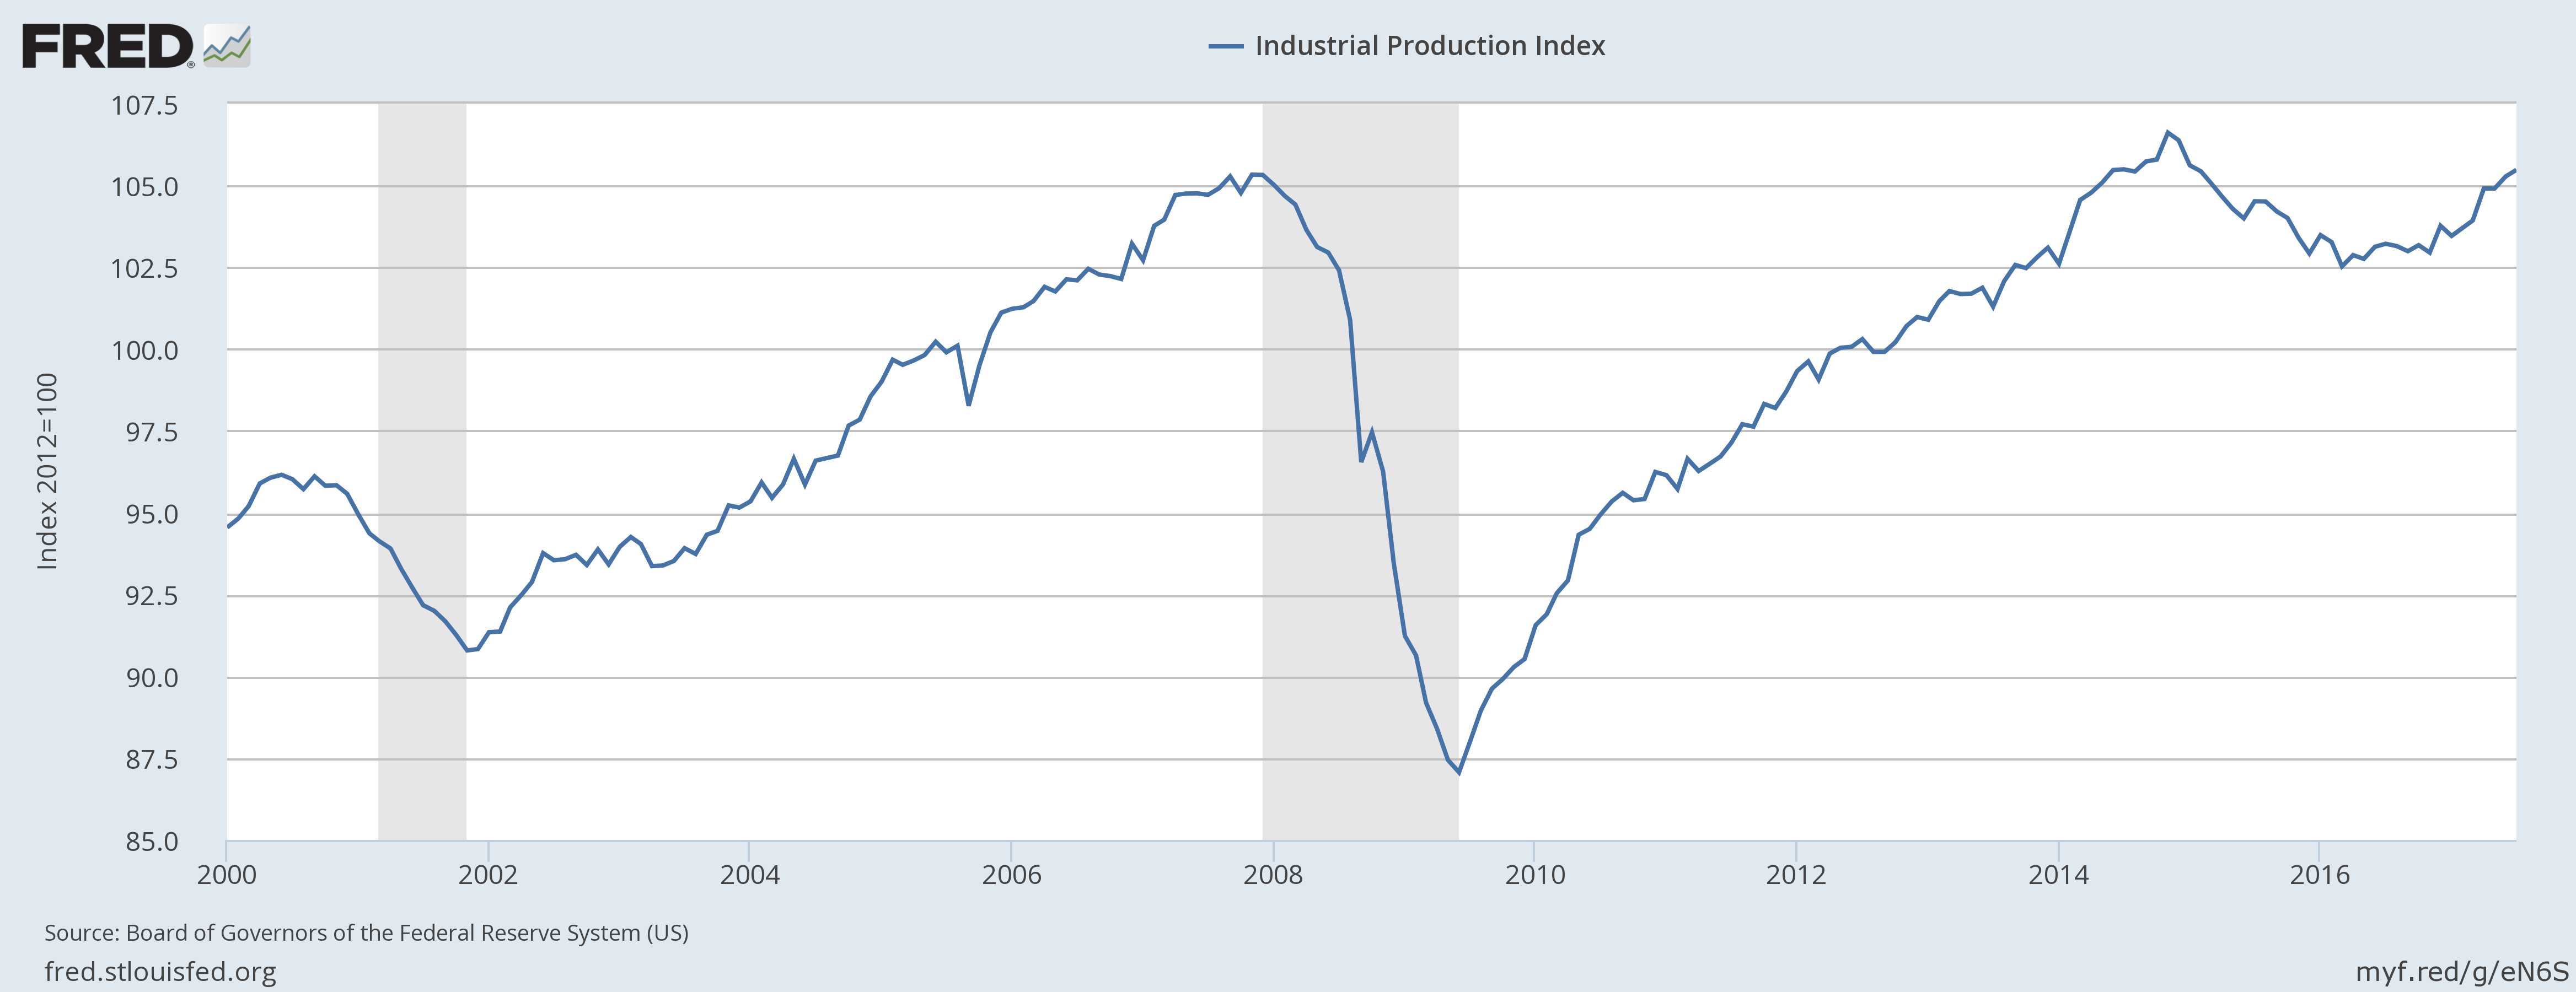 Industrial Production on the Rise in 2017